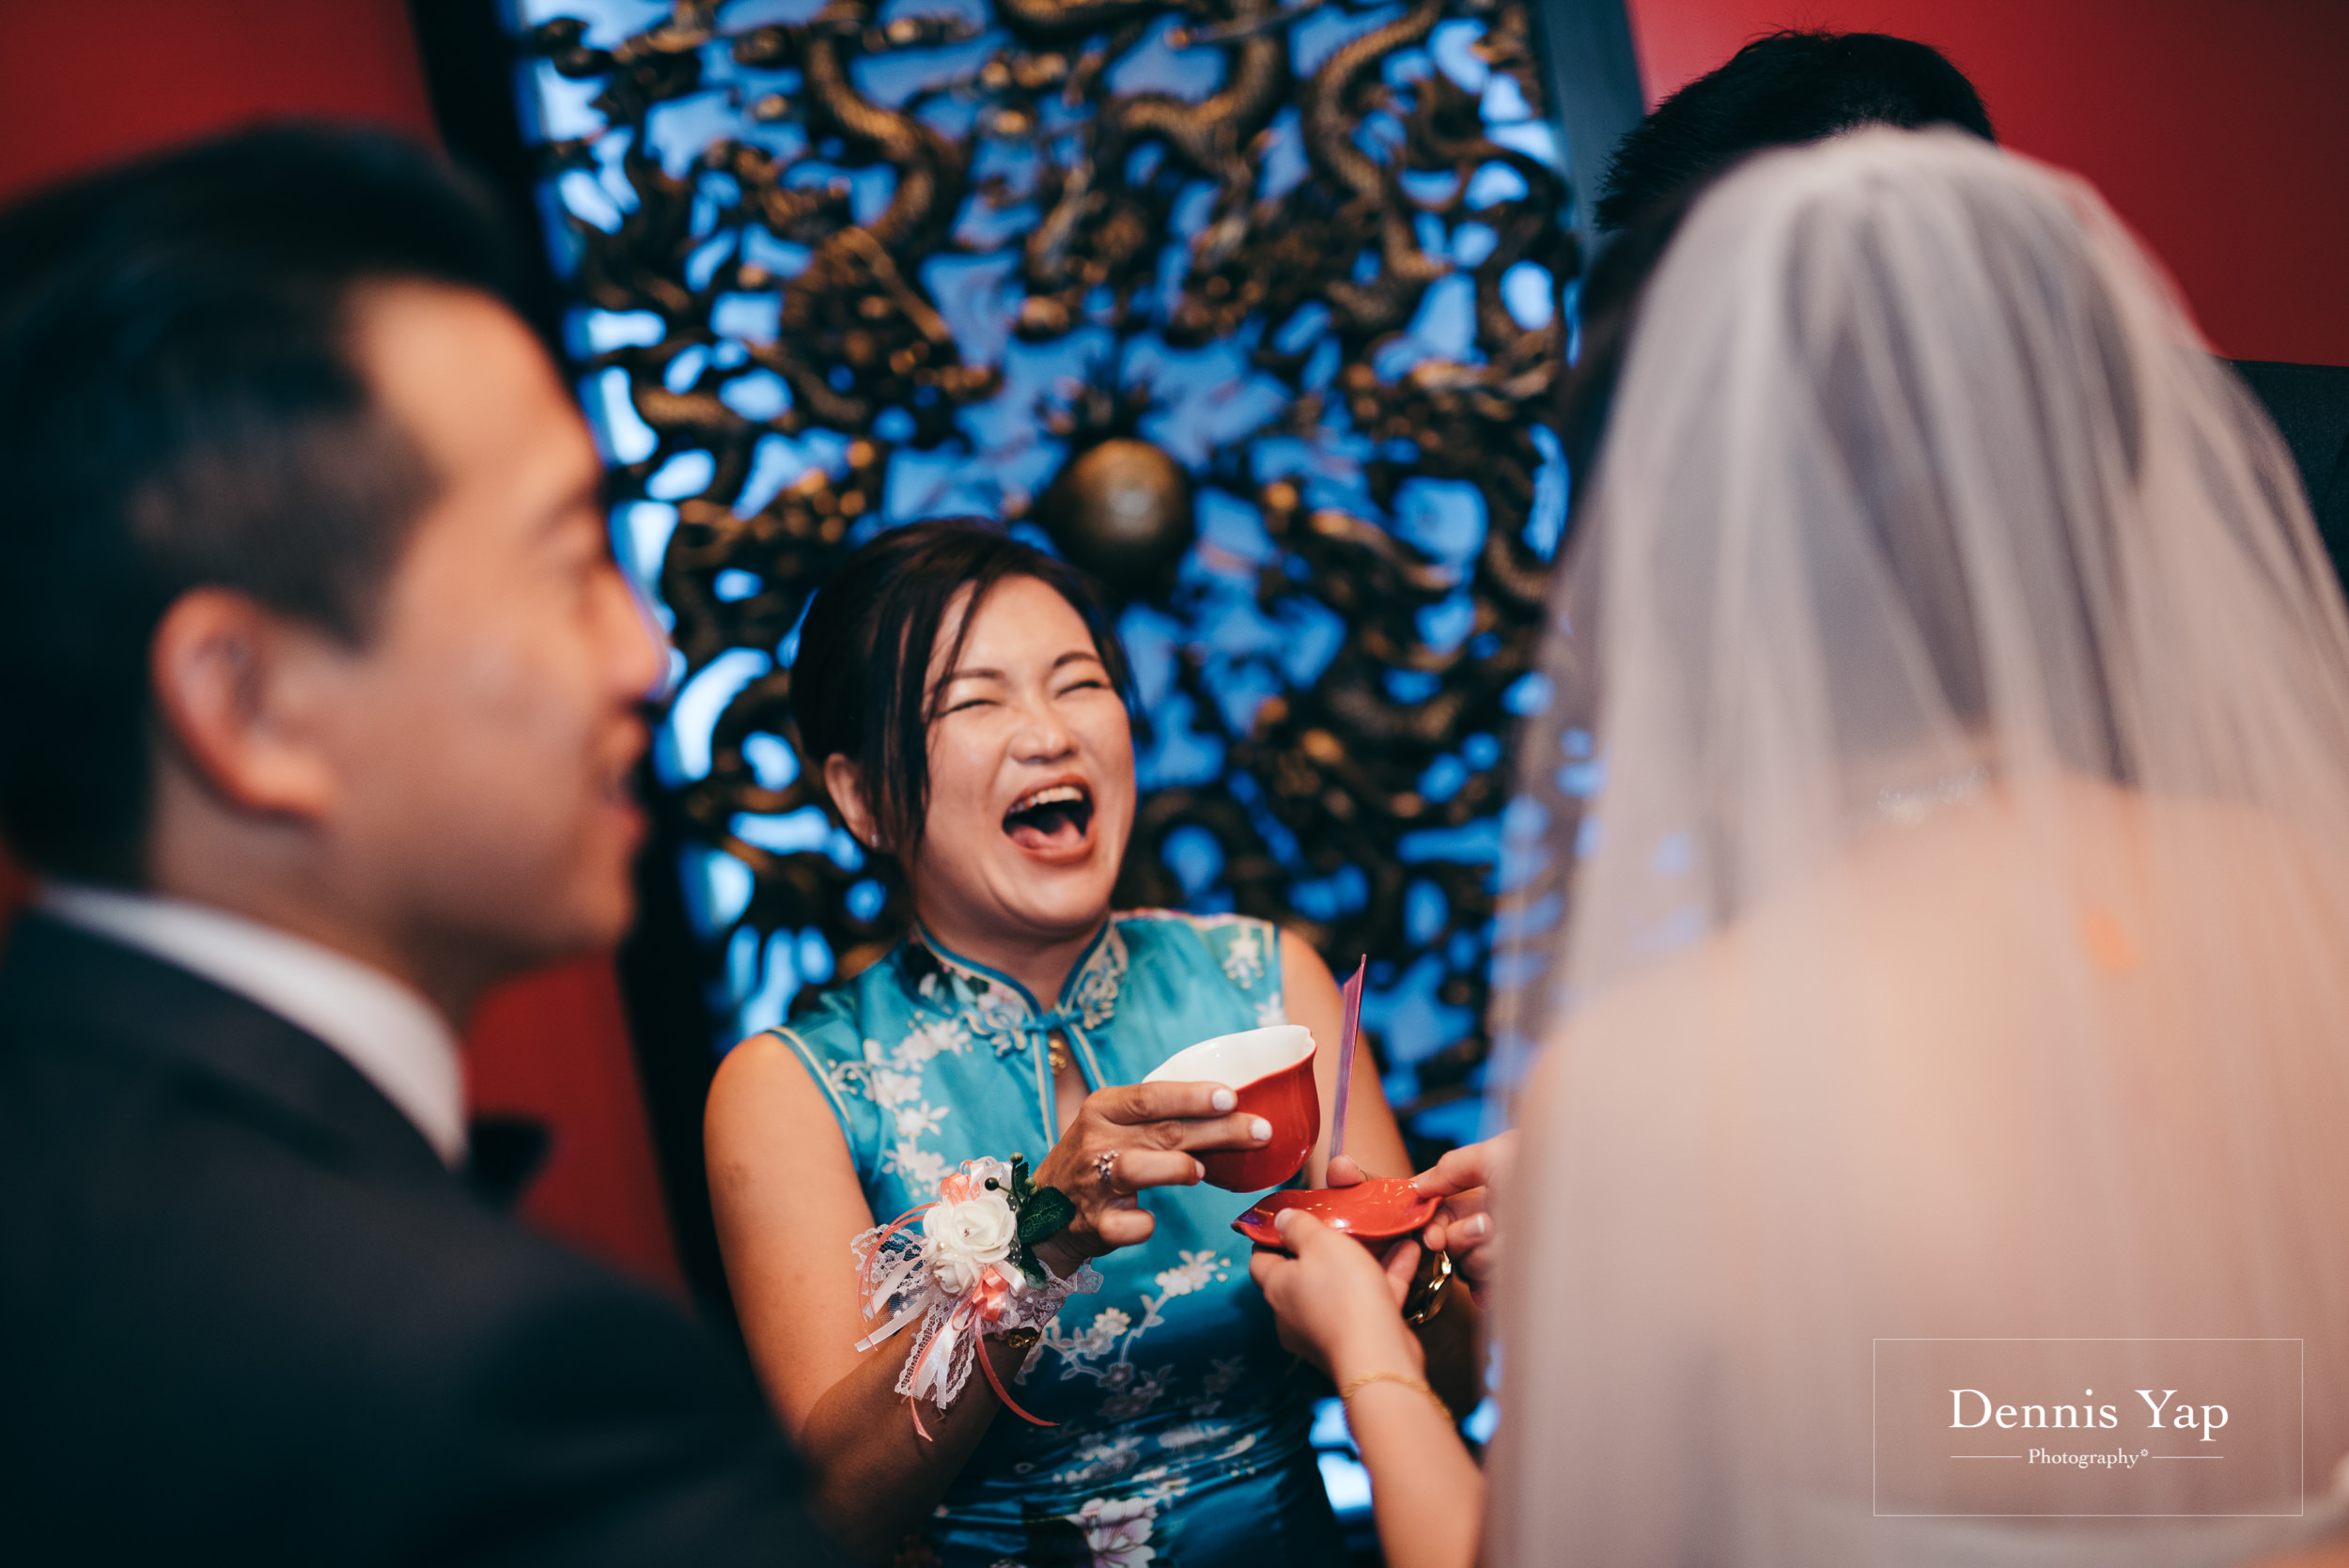 boon weng cyndy simple wedding gate crash luncheon shangrila kuala lumpur red traditional dennis yap photography-120.jpg